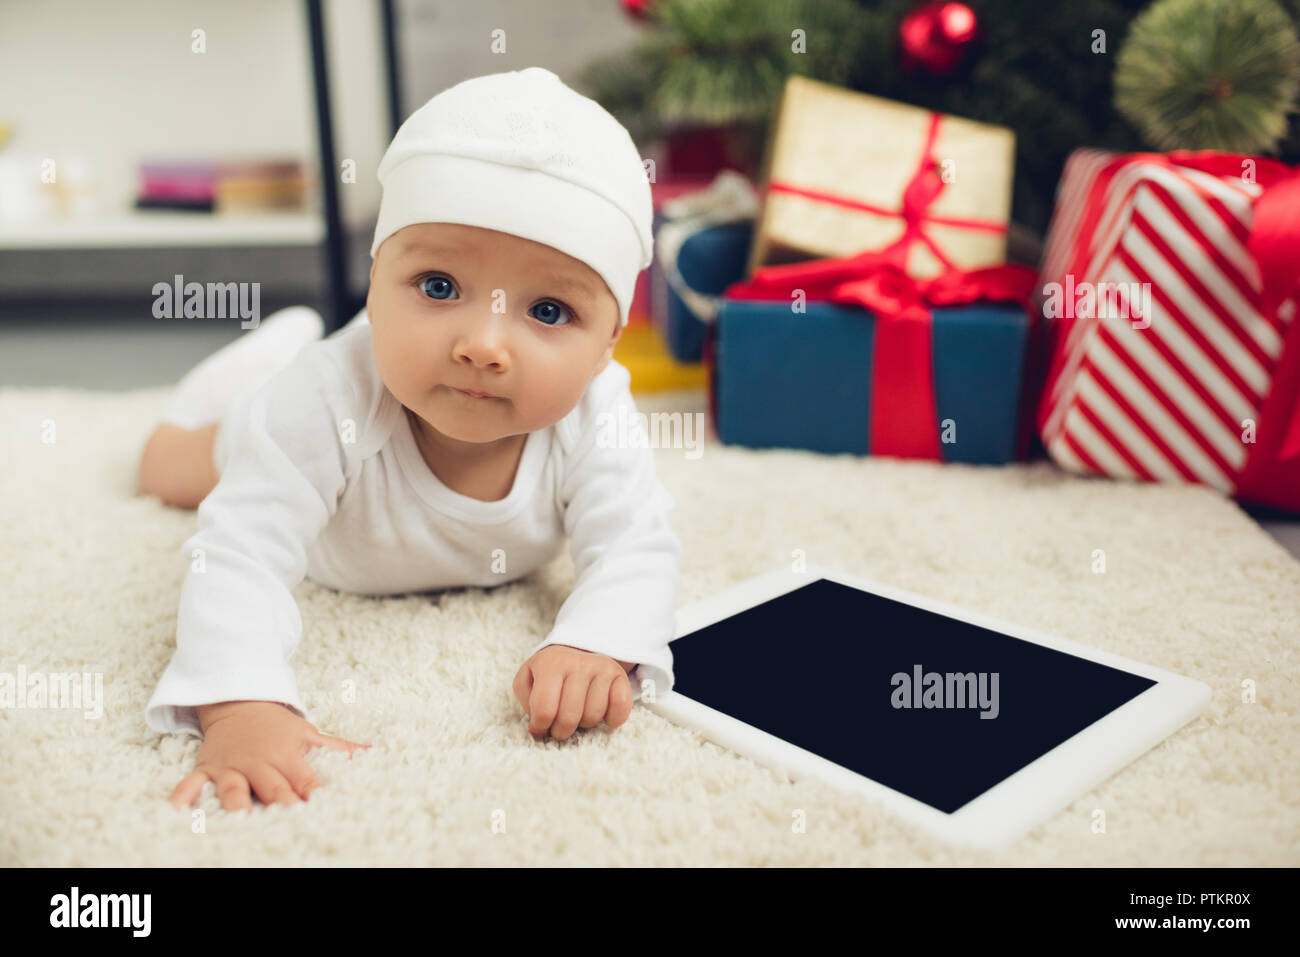 9dd520b019e7 cute little baby with tablet lying on floor with christmas gifts blurred on  background - Stock